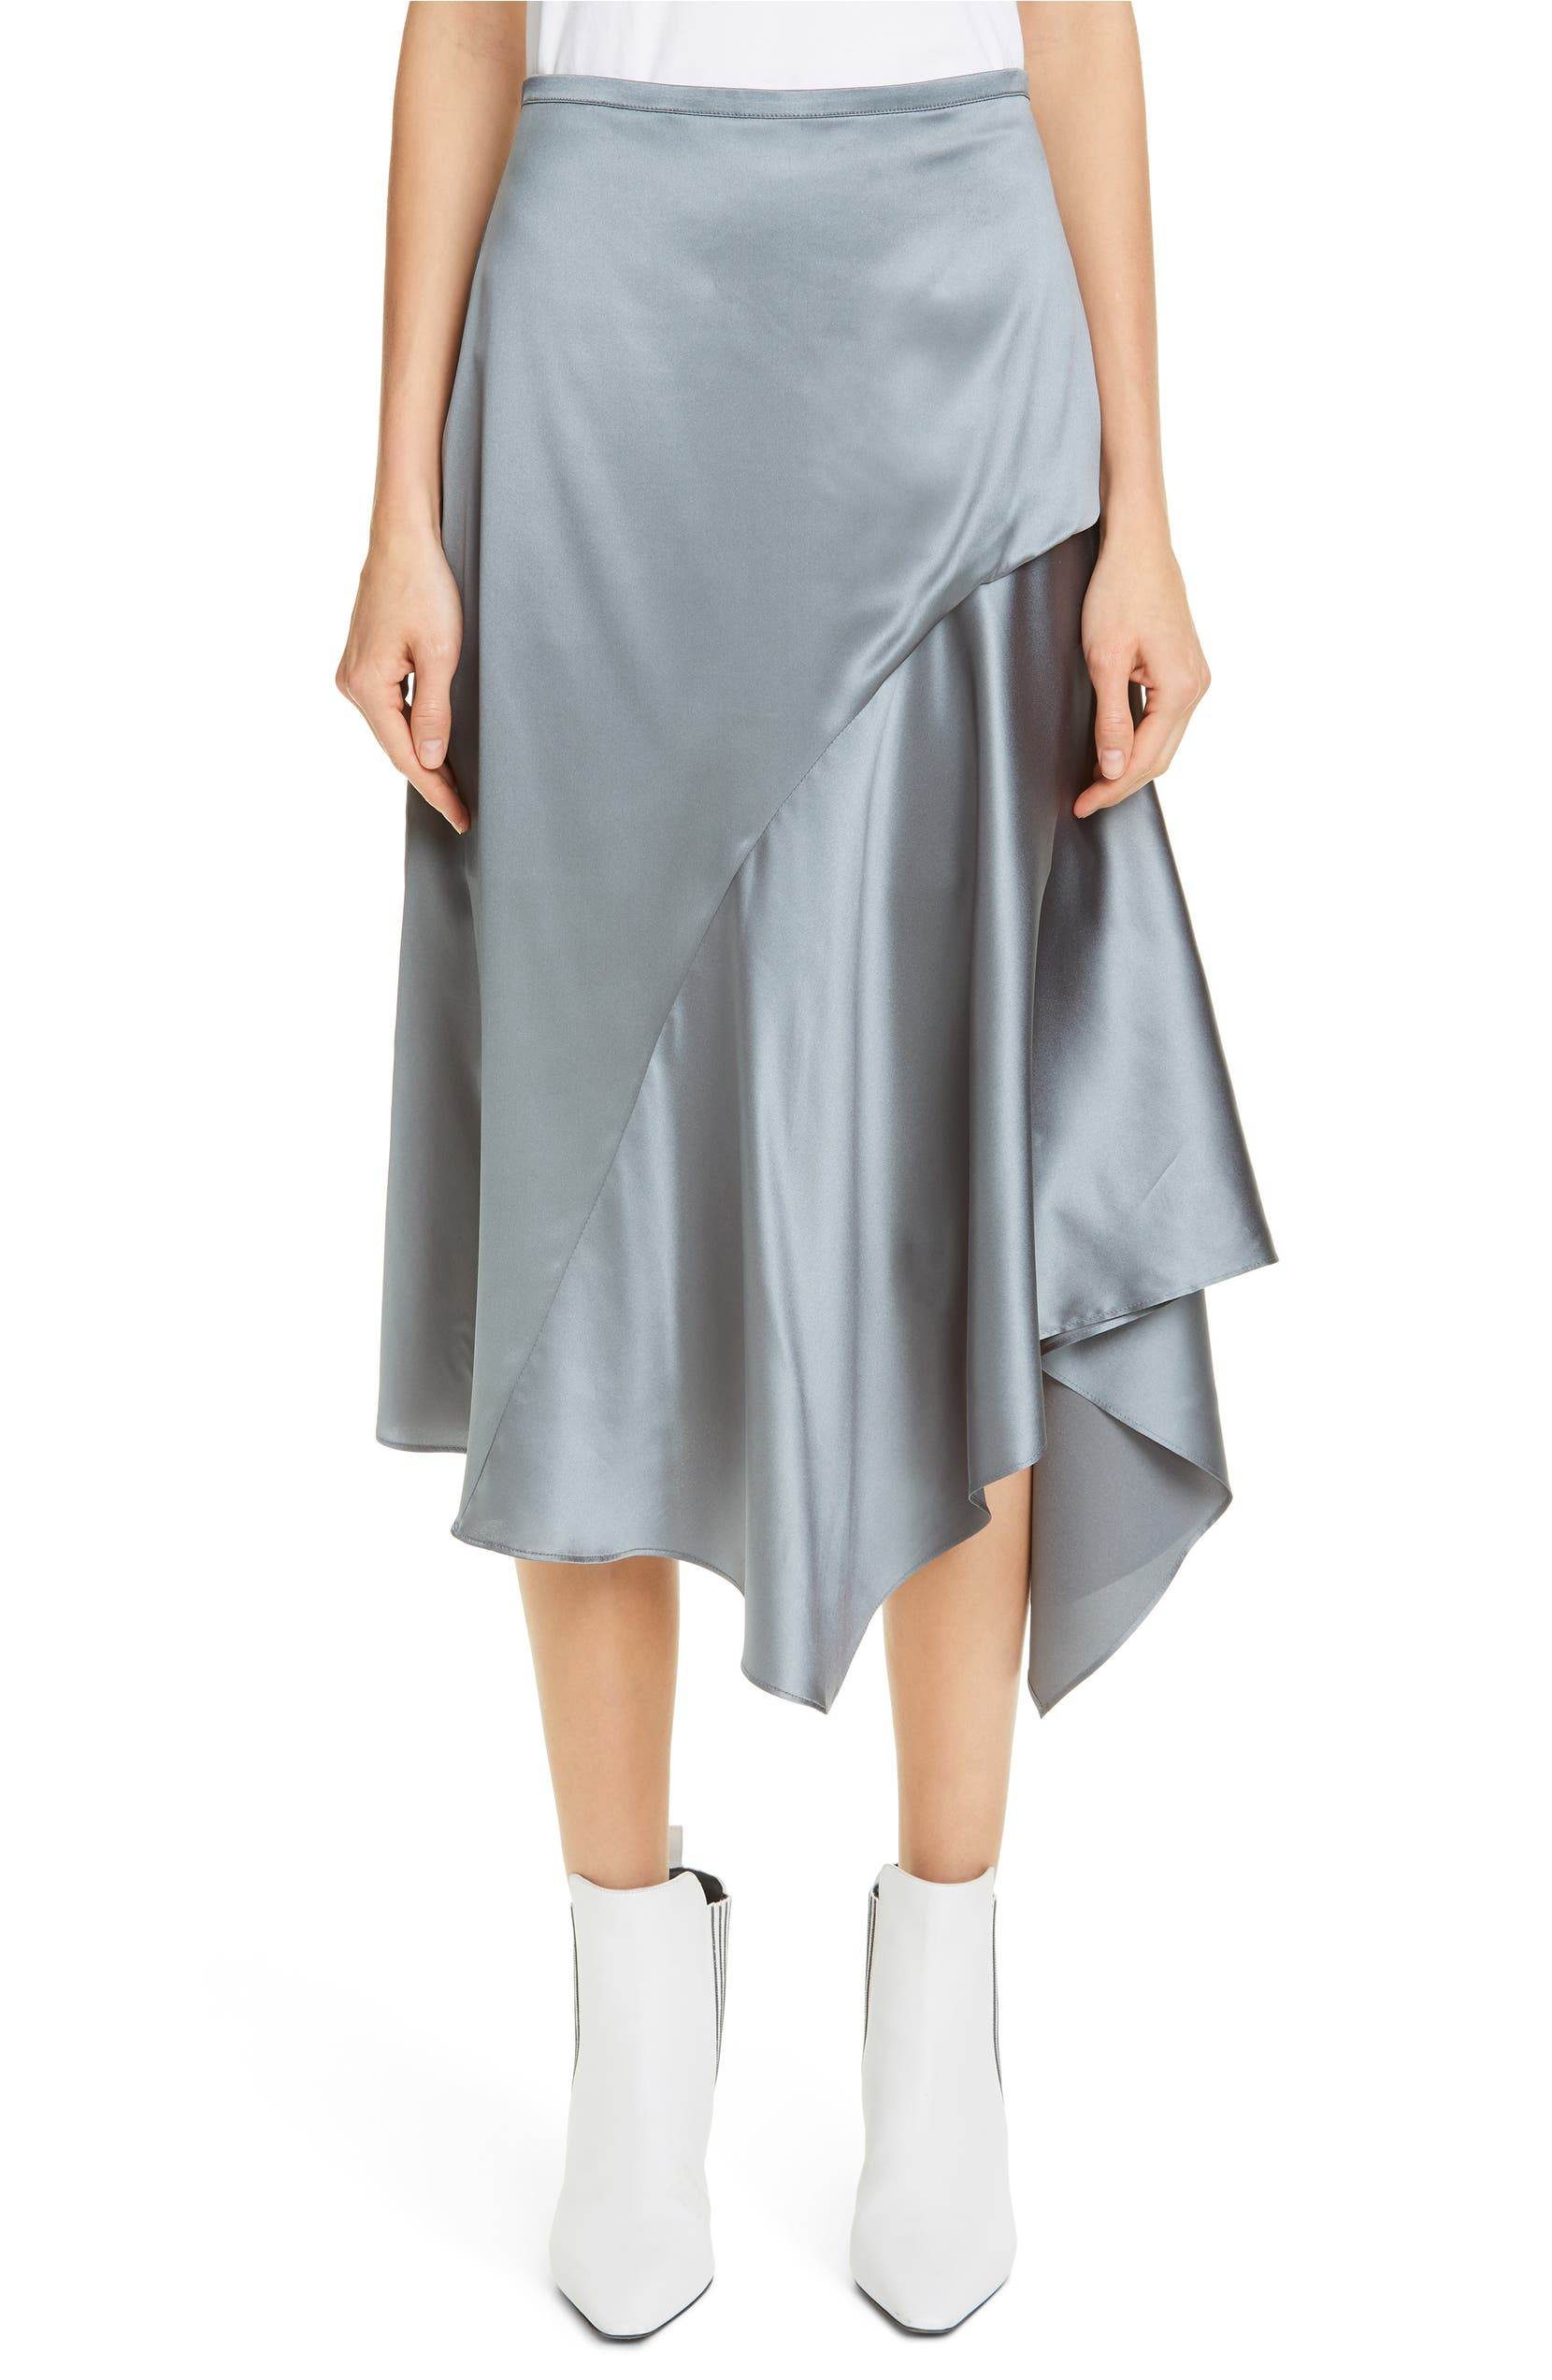 007d2ca3d0 Brunello Cucinelli Stretch Silk Satin Godet Midi Skirt | Nordstrom